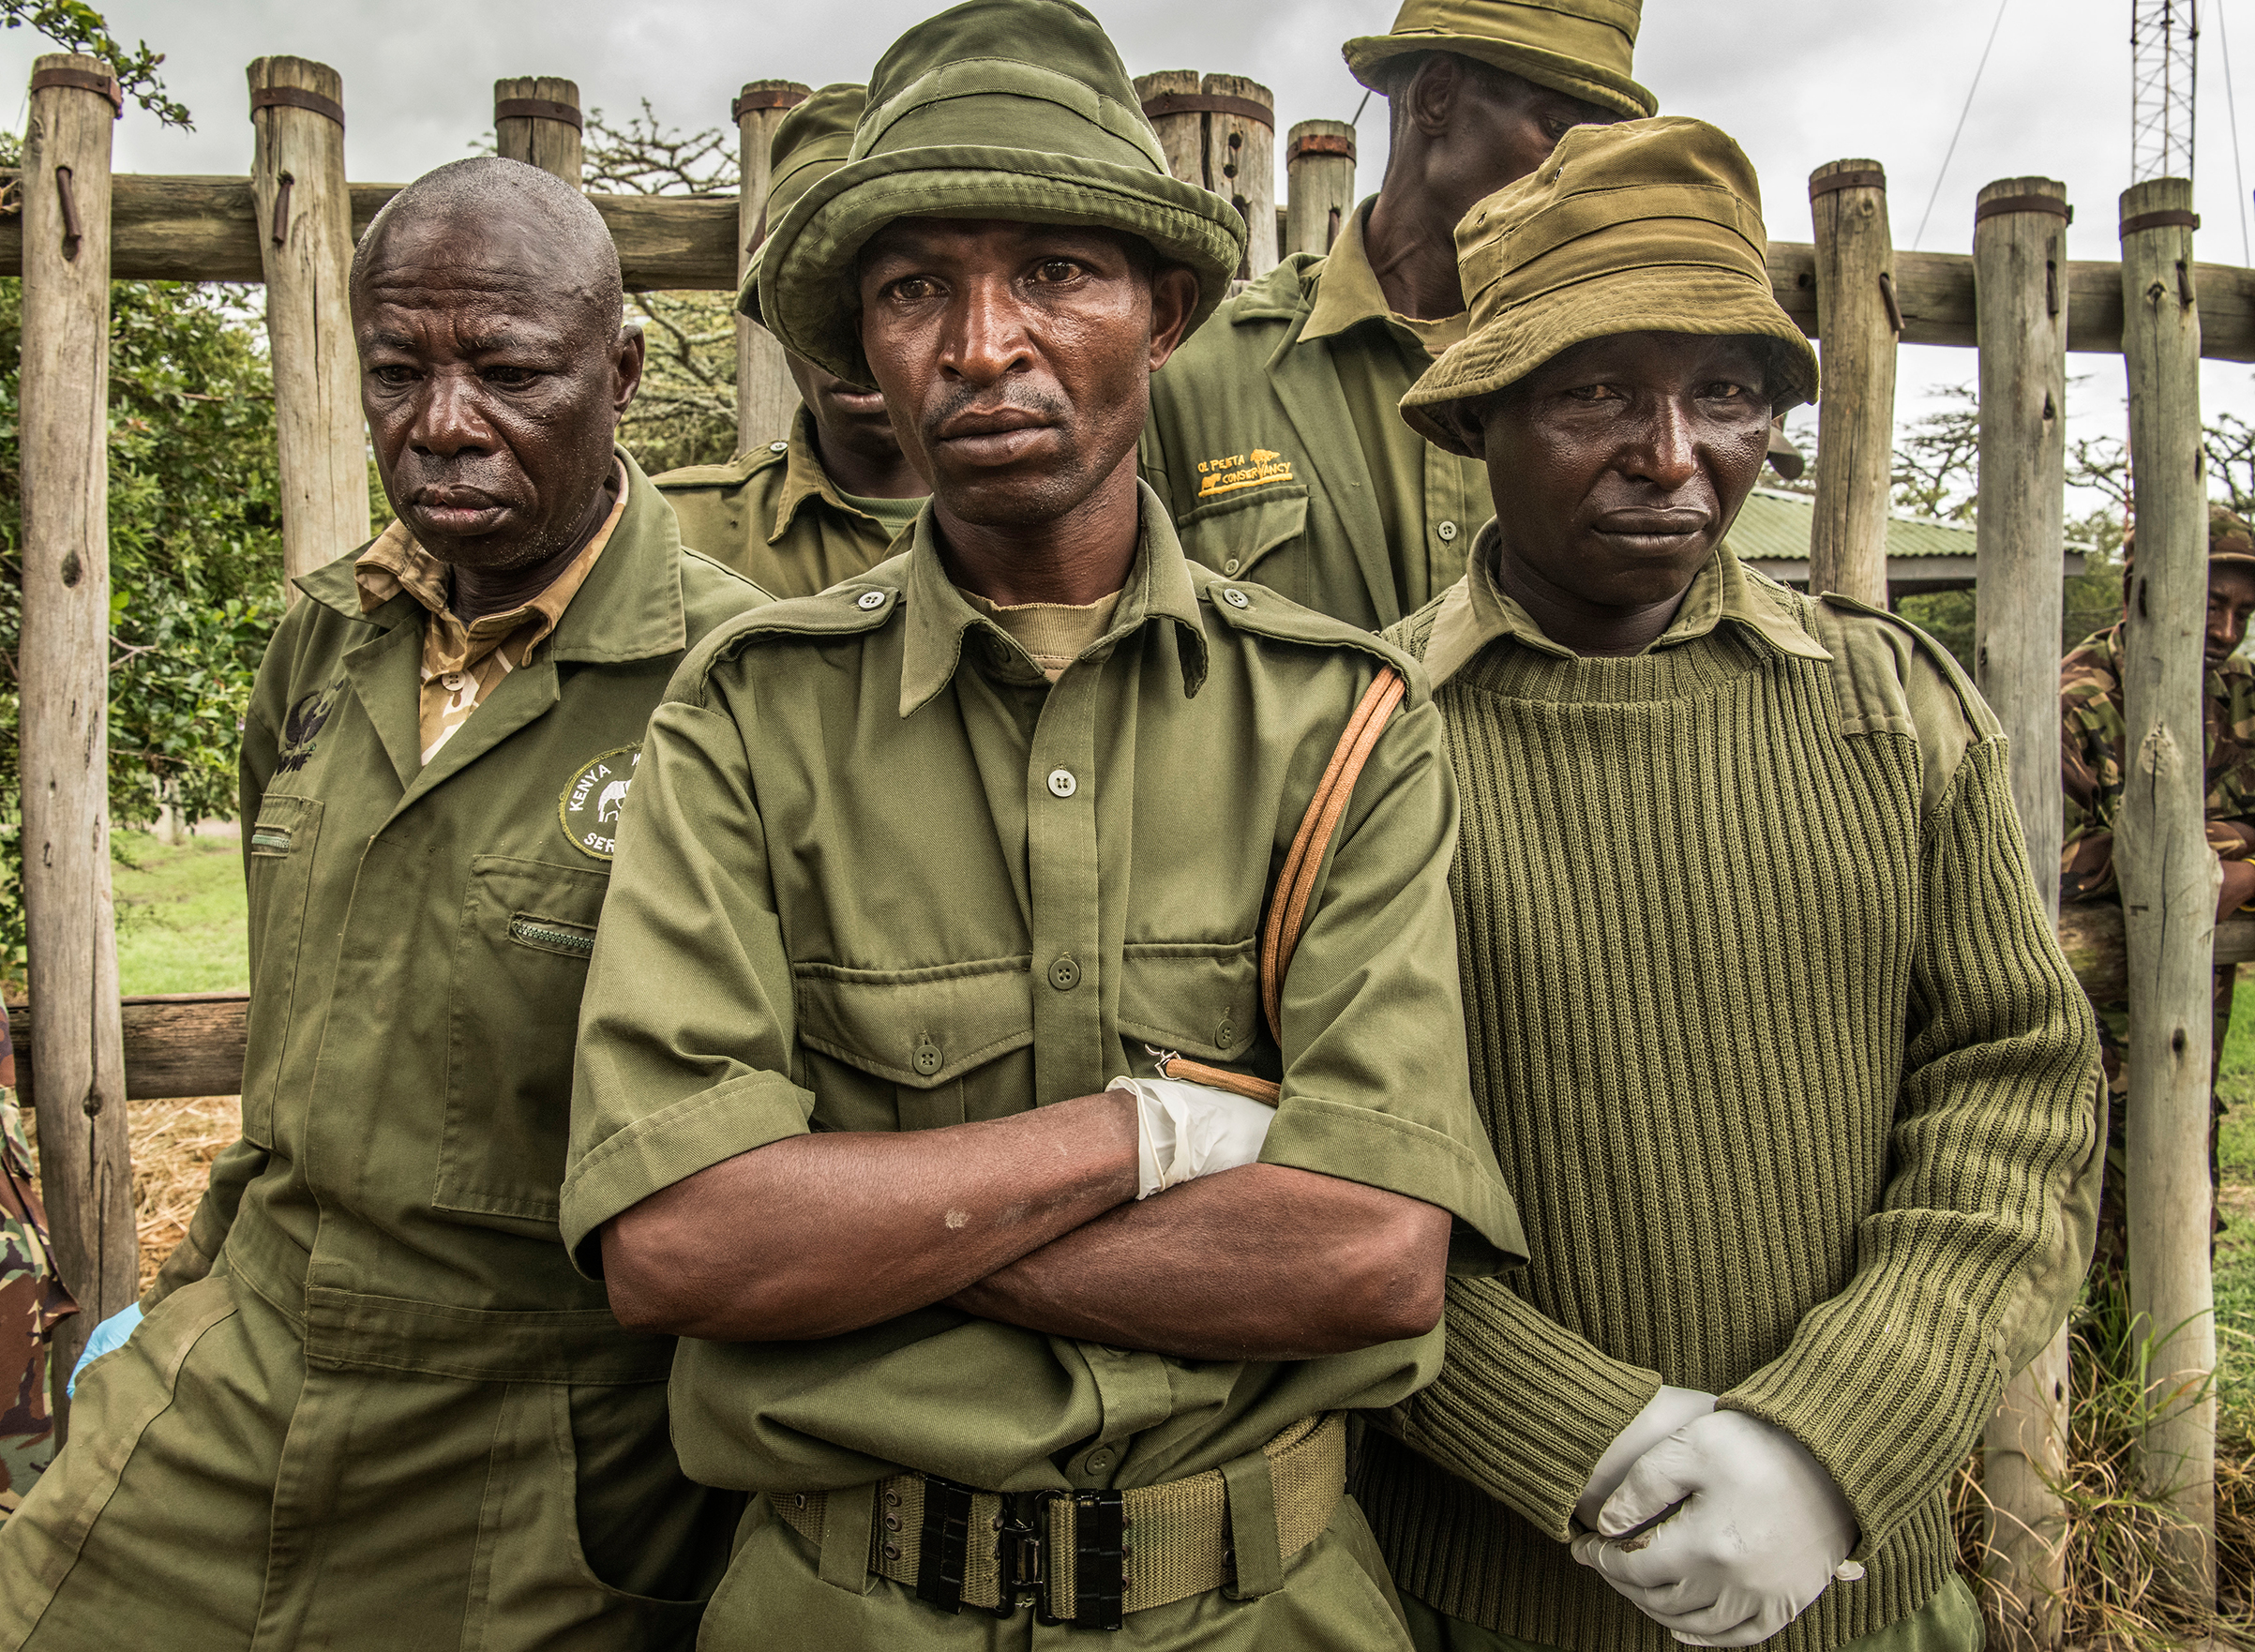 Wildlife rangers mourn the passing of Sudan, the last male Northern White Rhino on the planet.